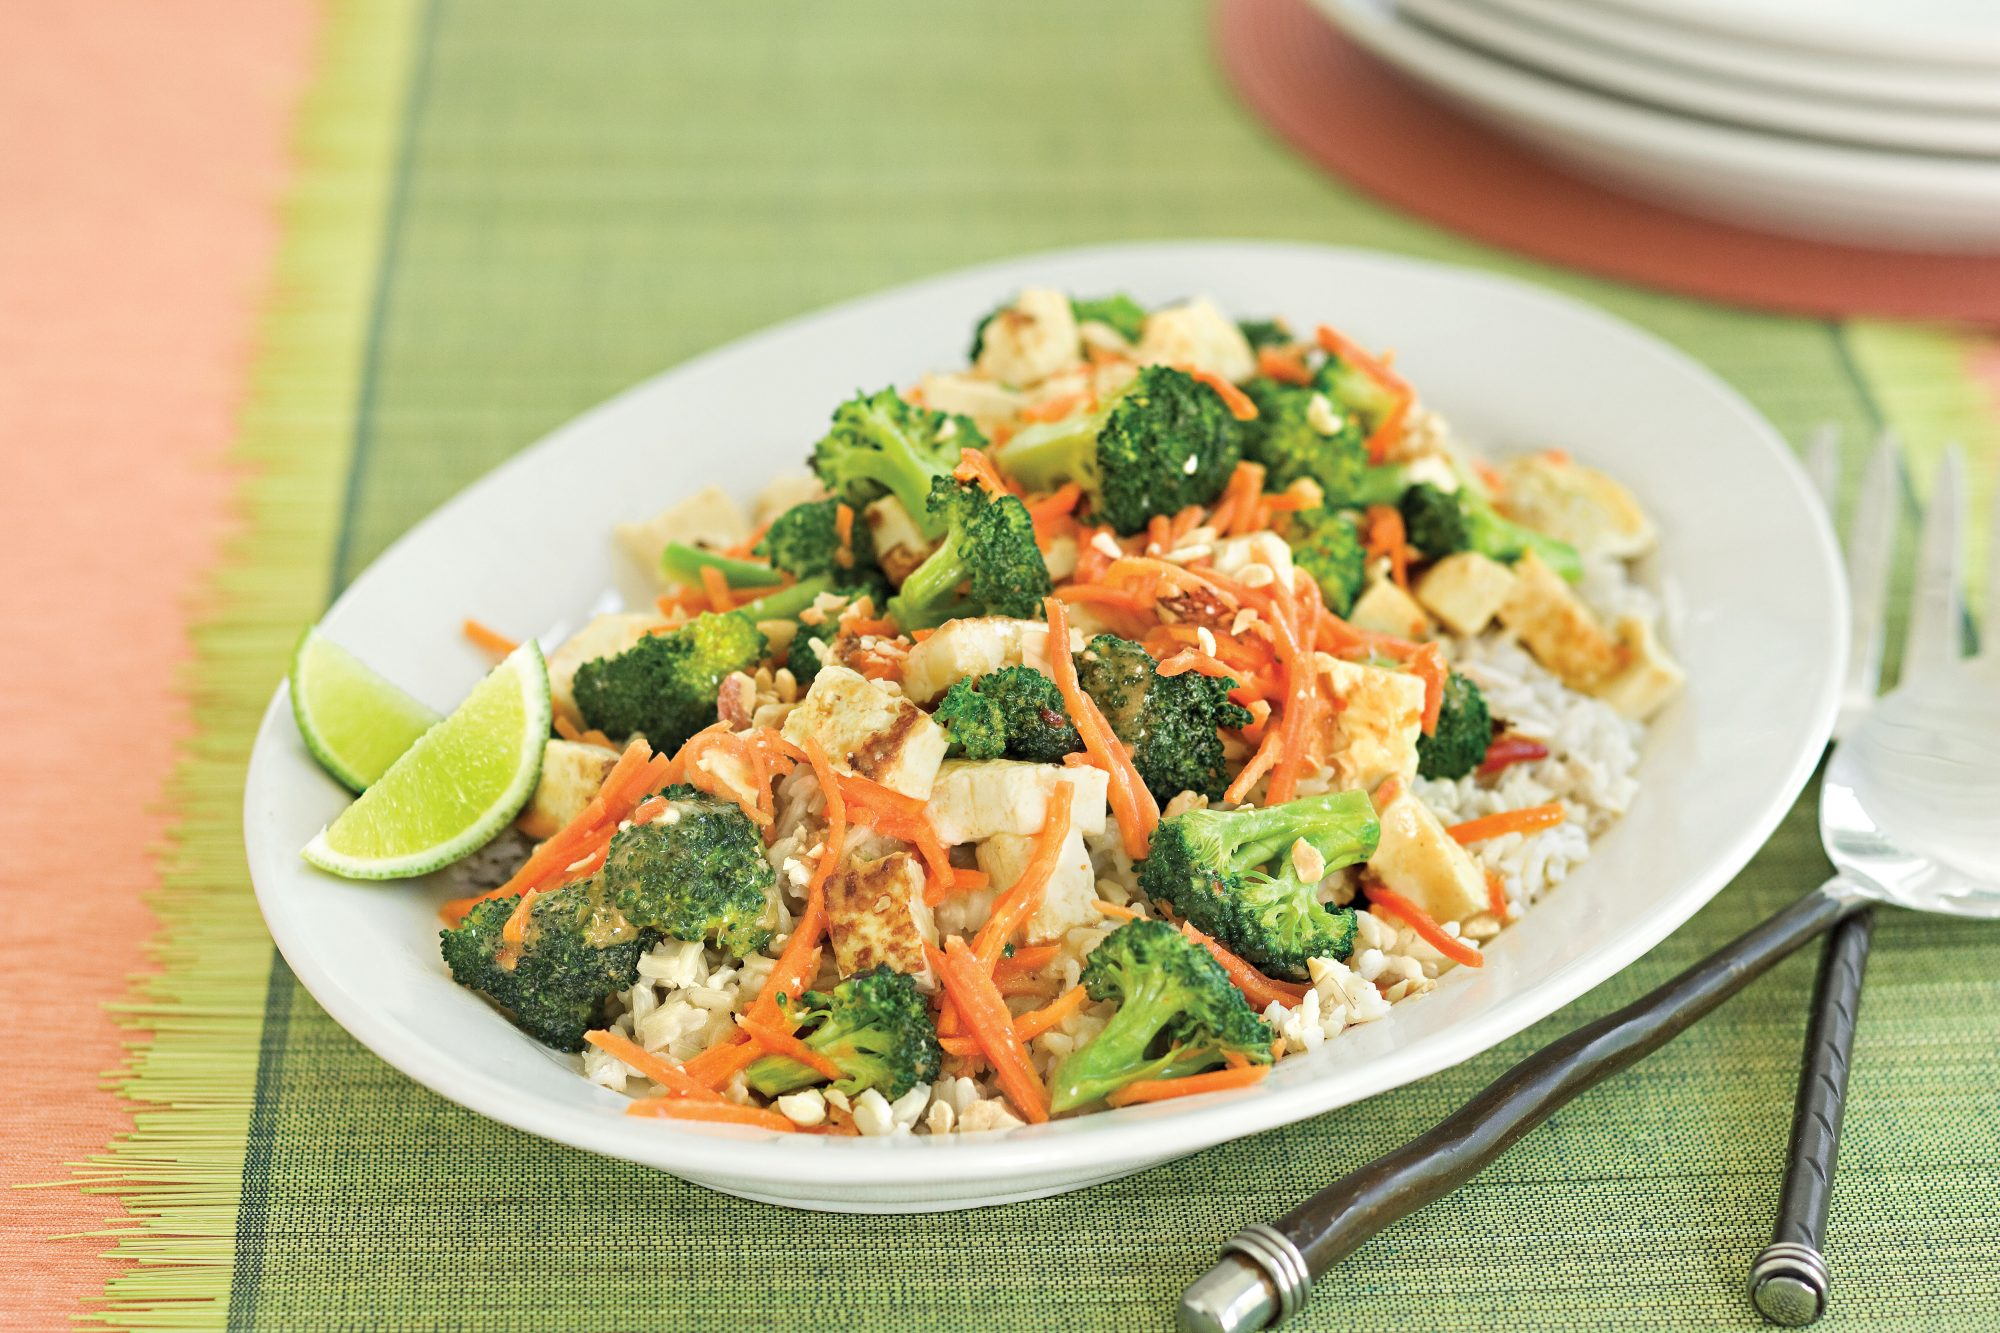 Peanut-Broccoli Stir-fry Recipe